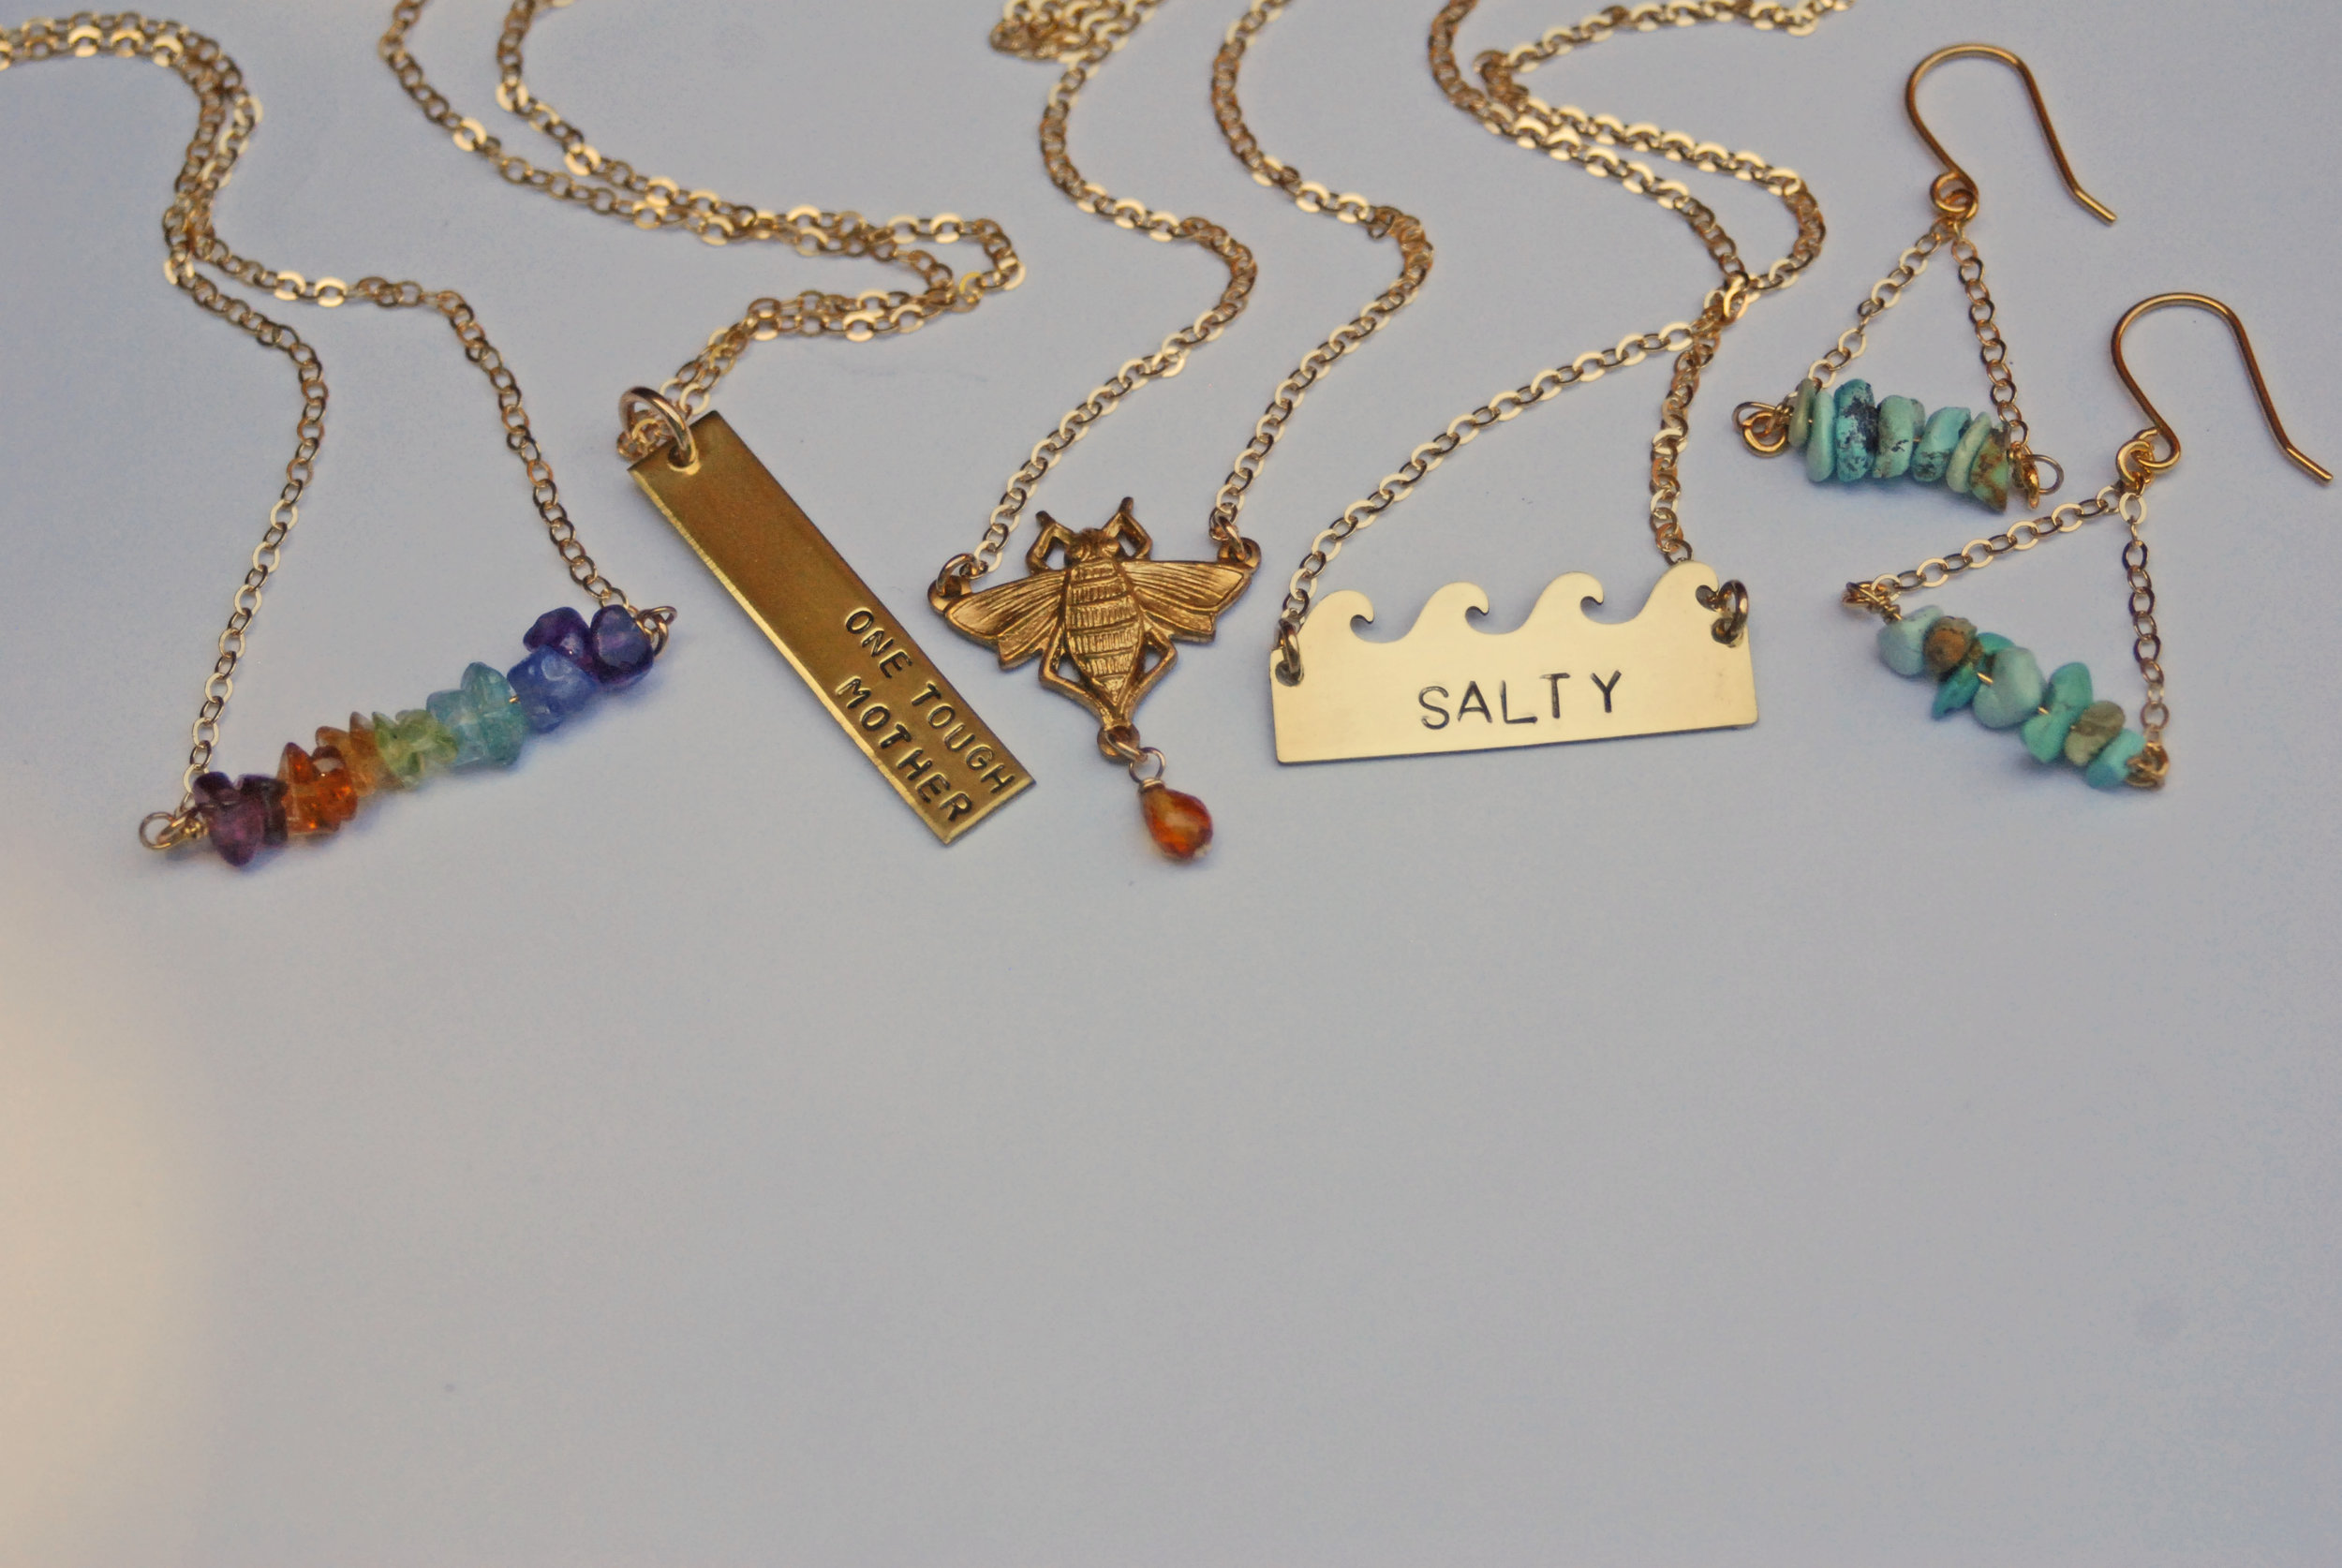 Bang-Up Betty is subversive and sweet hand-stamped jewelry made in Little Rock, Arkansas. Starting in September, you can shop Bang-Up Betty at Stifft Station Gifts and have custom jewelry made while you shop.